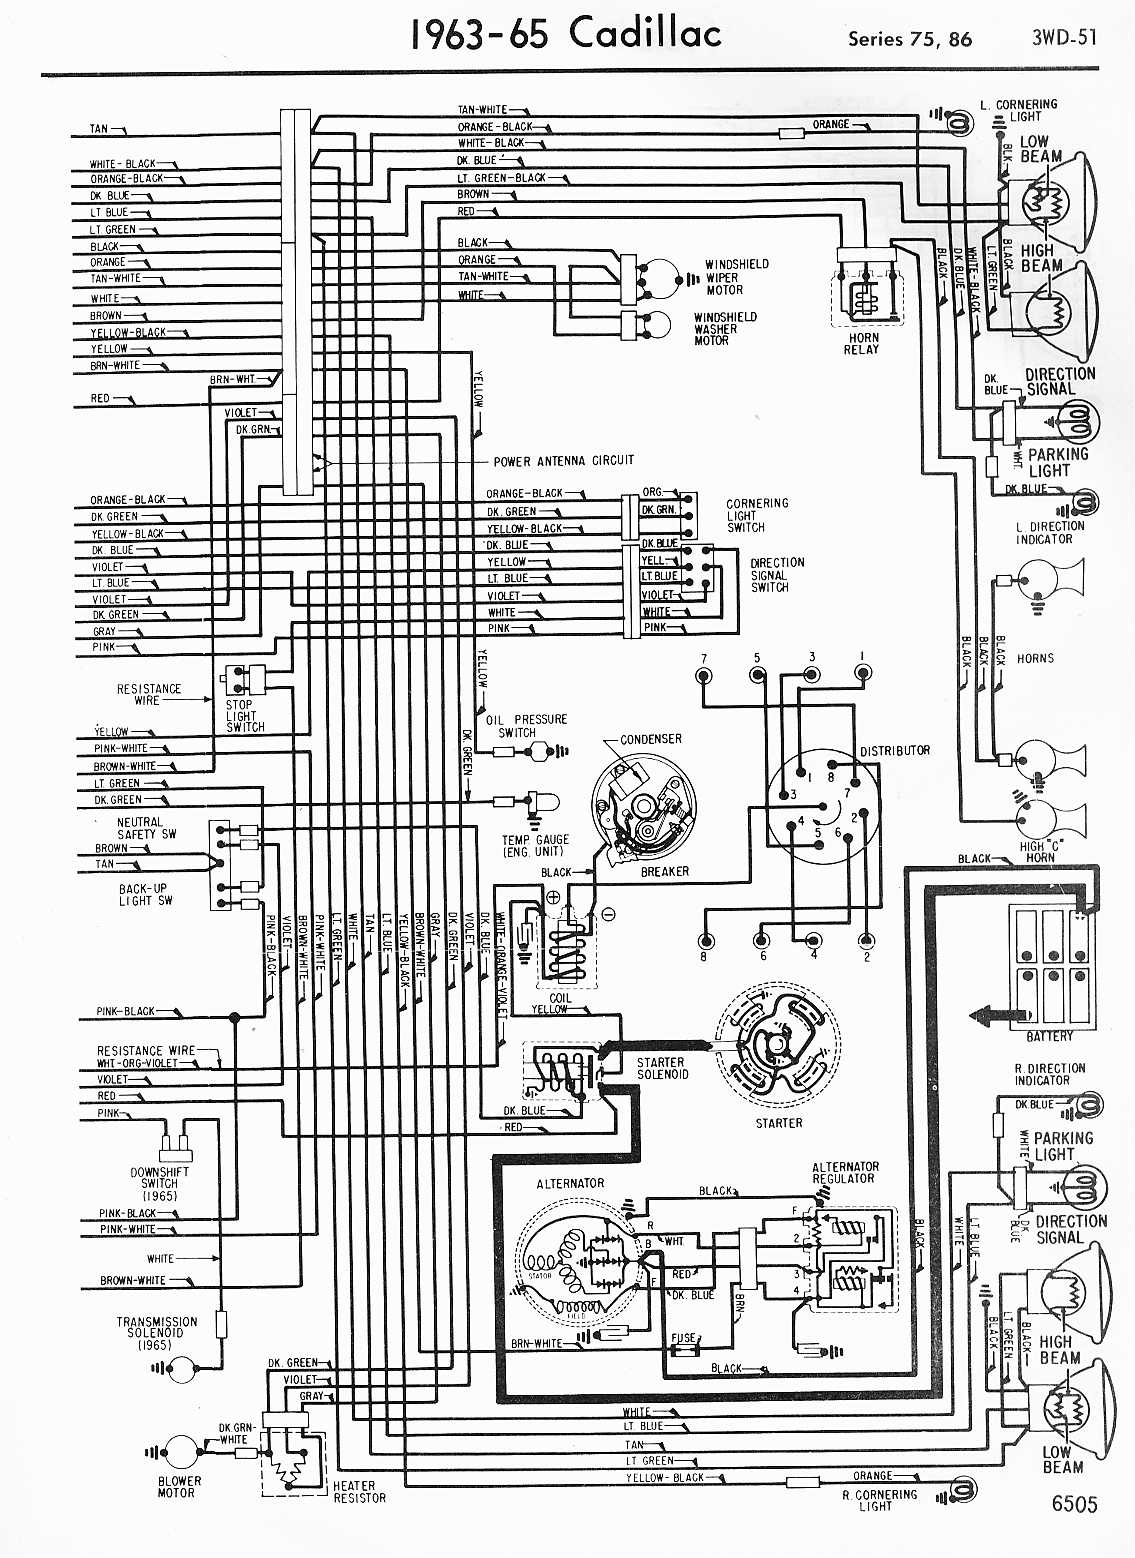 1999 Holiday Rambler Wiring Diagram - Engine Control Wiring Diagram on holiday rambler floor plans, holiday rambler parts, holiday rambler lights, holiday rambler chassis, holiday rambler accessories, holiday traveler camper truck, holiday rambler body, holiday rambler specifications, holiday rambler brochures, holiday rambler seats, holiday rambler schematics, holiday rambler suspension, holiday rambler charging system,